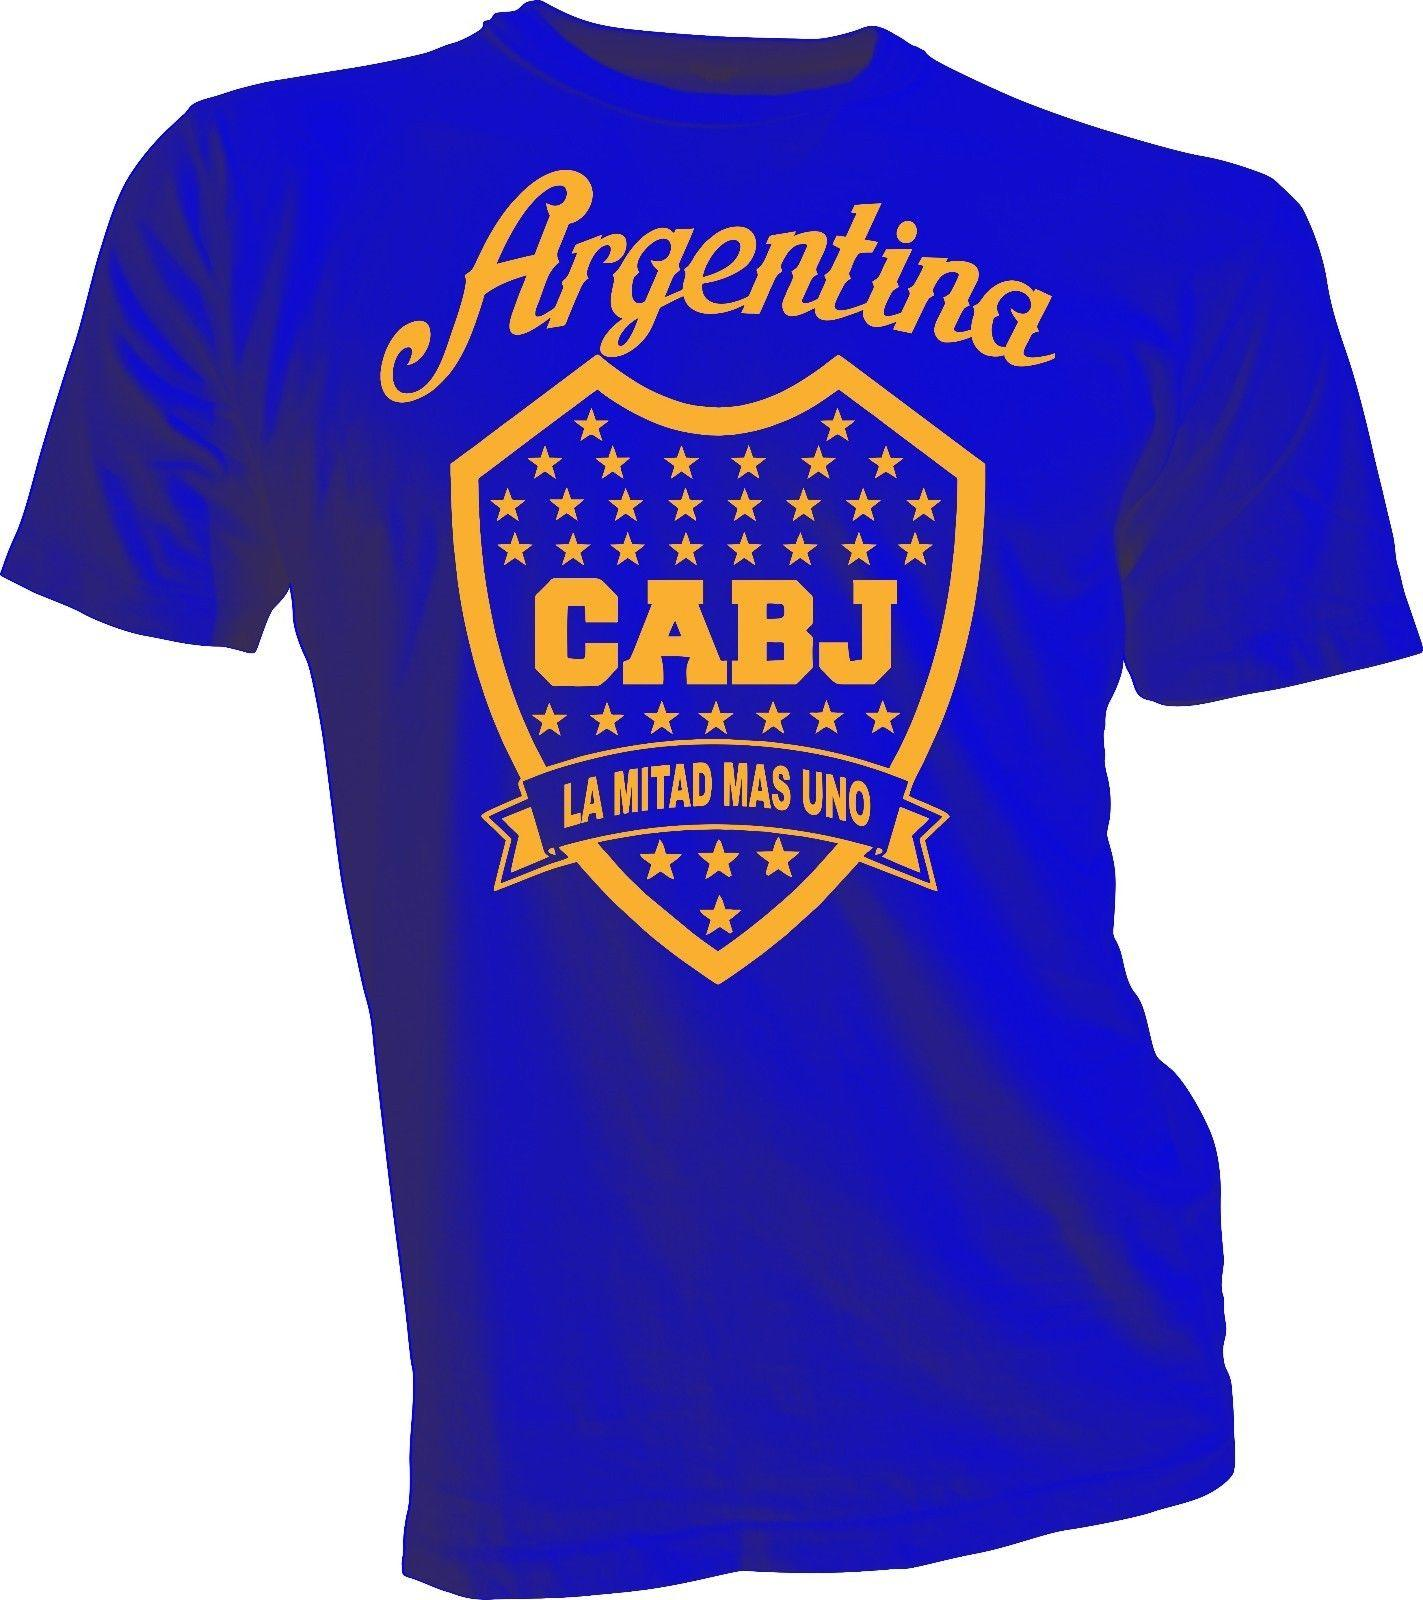 618e7bdc30a Boca Juniors De Argentina Futbol Soccer T Shirt Camiseta La Mitad Mas Uno  New Funny Unisex Casual Gift T Shirts With Awesome Cheap T Shirts From ...